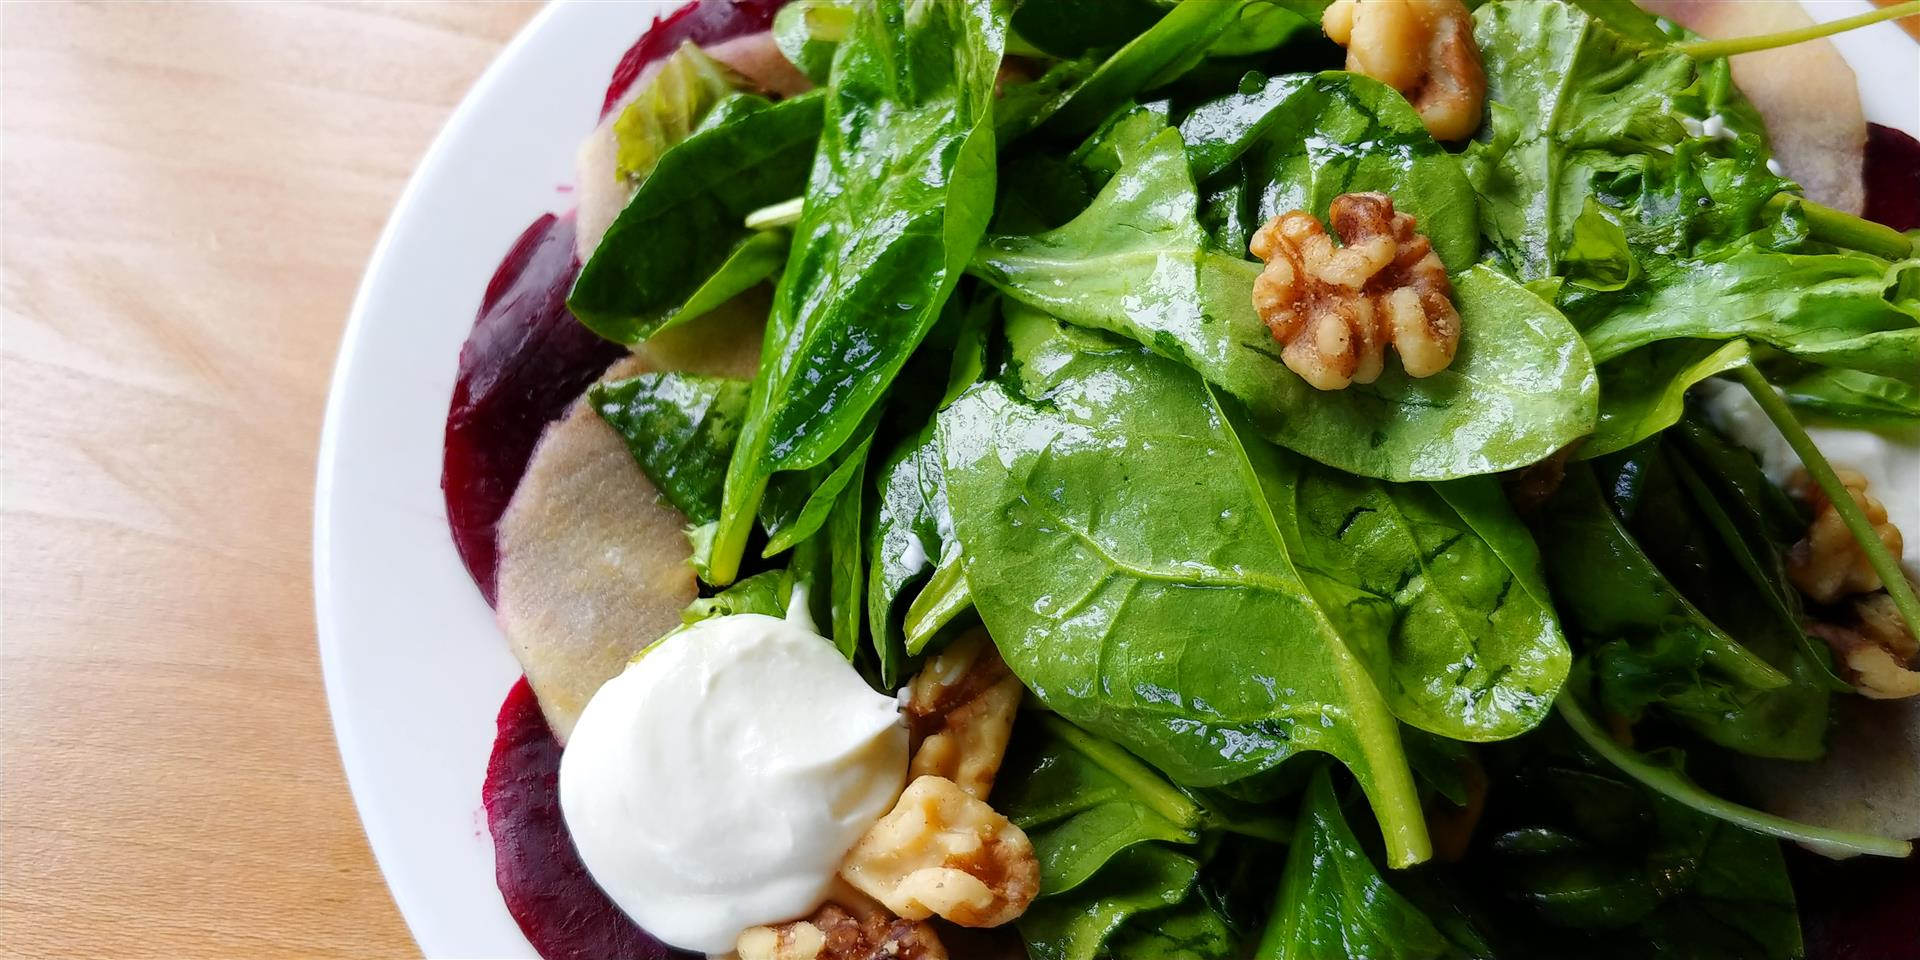 a spinach salad with beats and walnuts on a plate